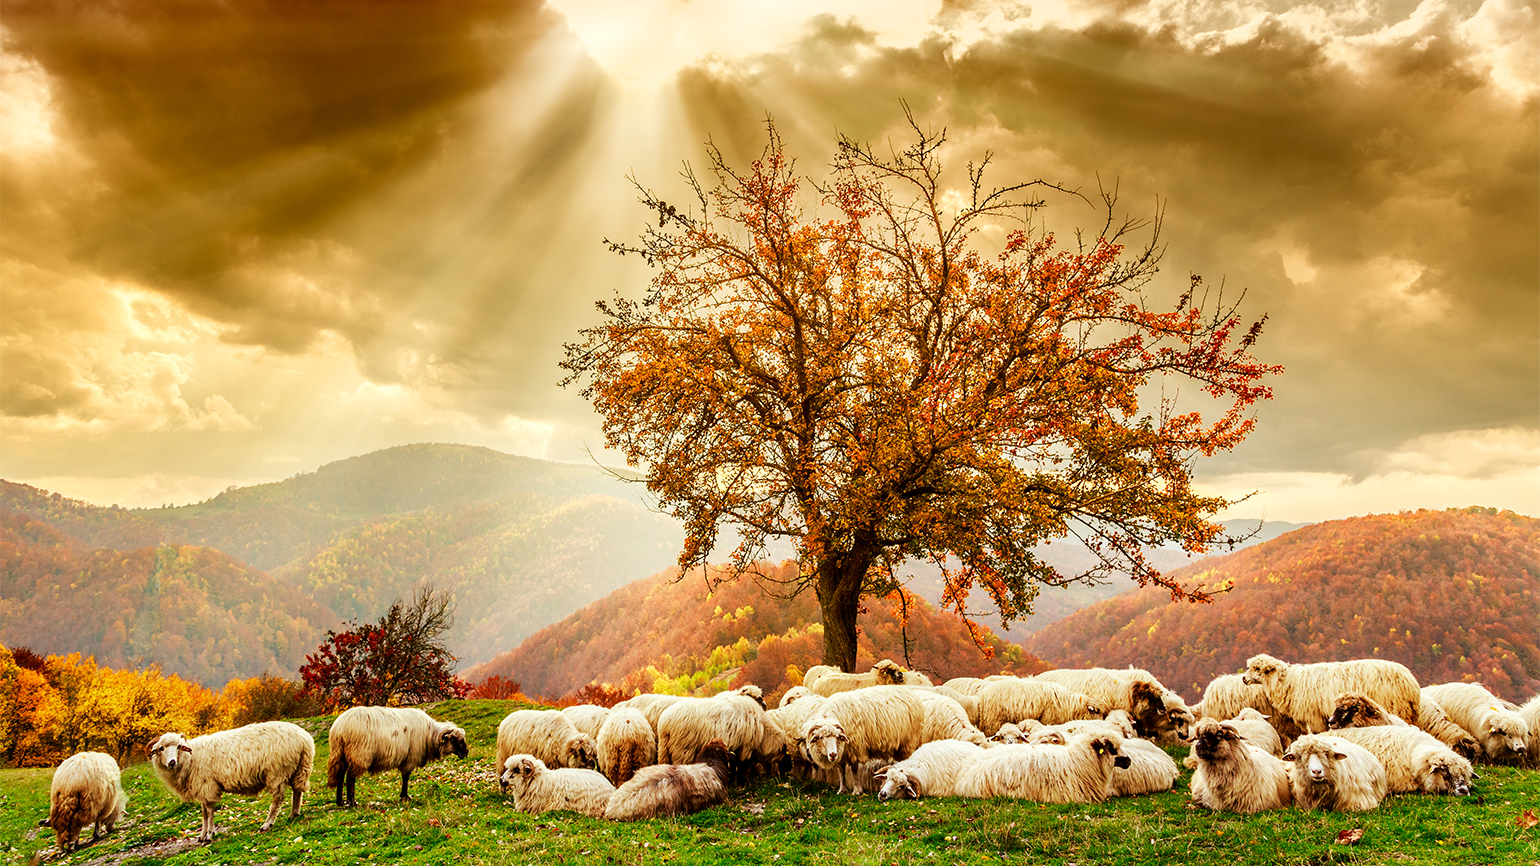 A flock of sheep in an autumnal meadow